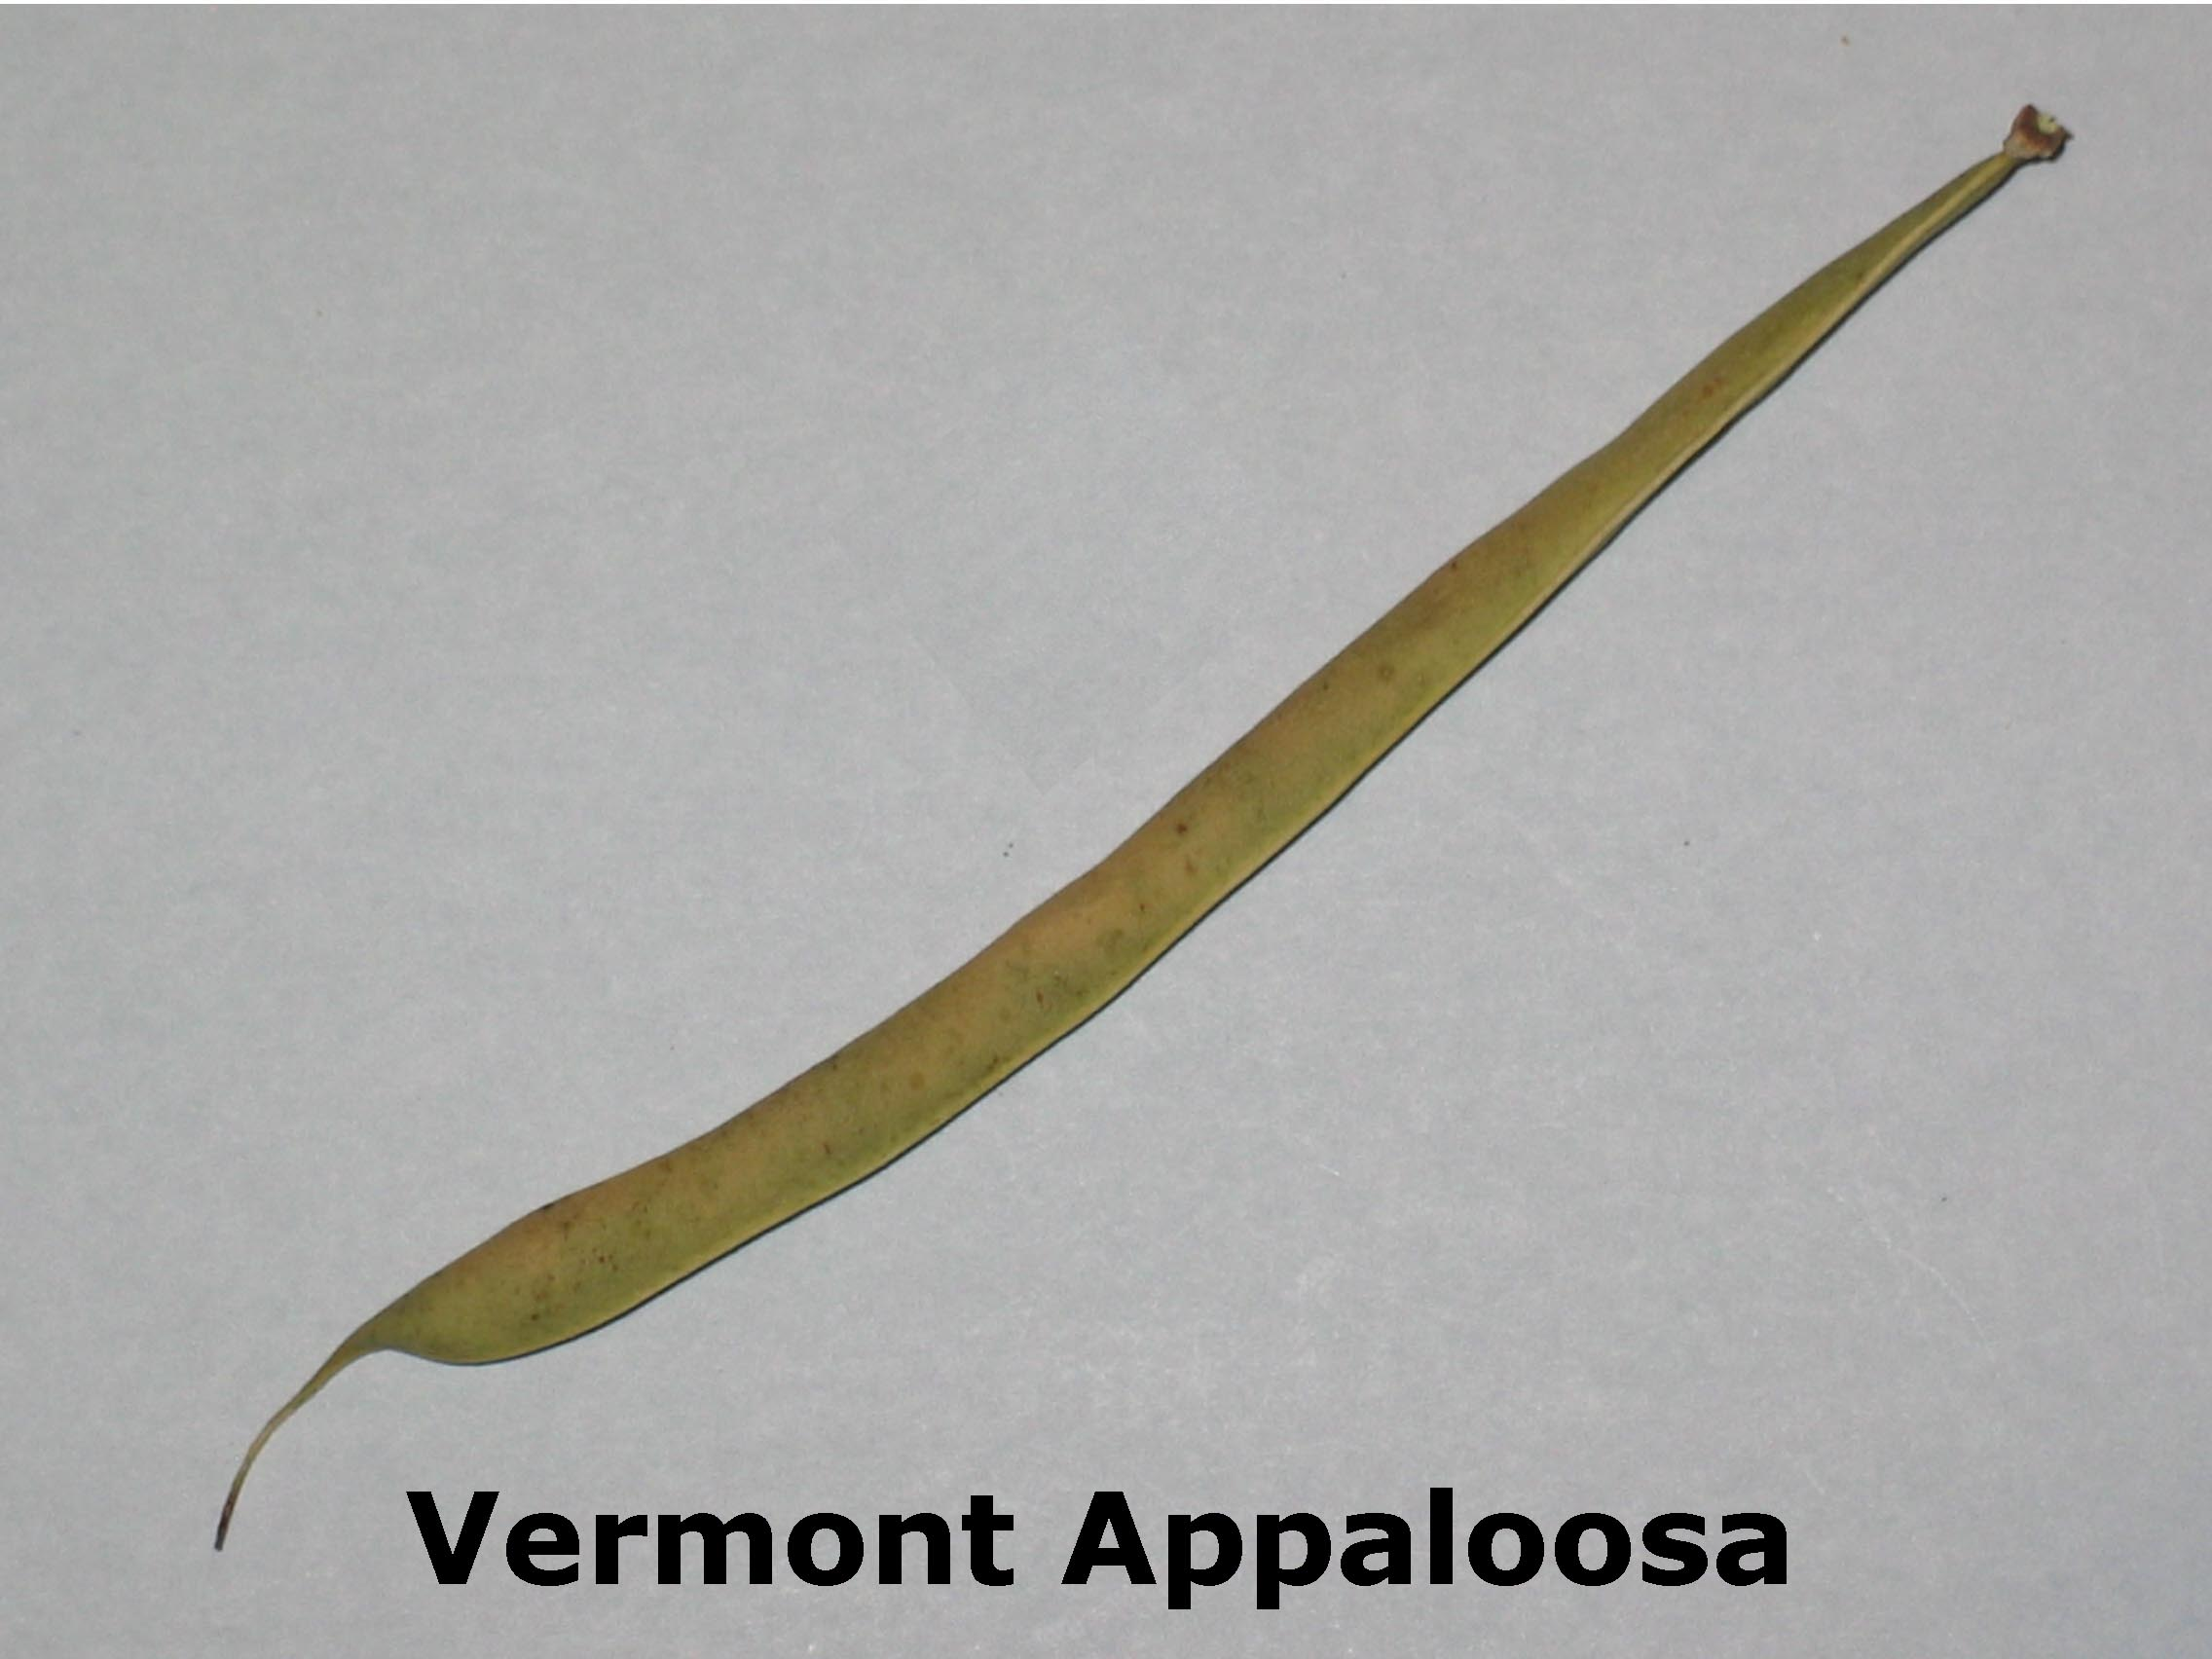 image of a Vermont Appaloosa bean pod